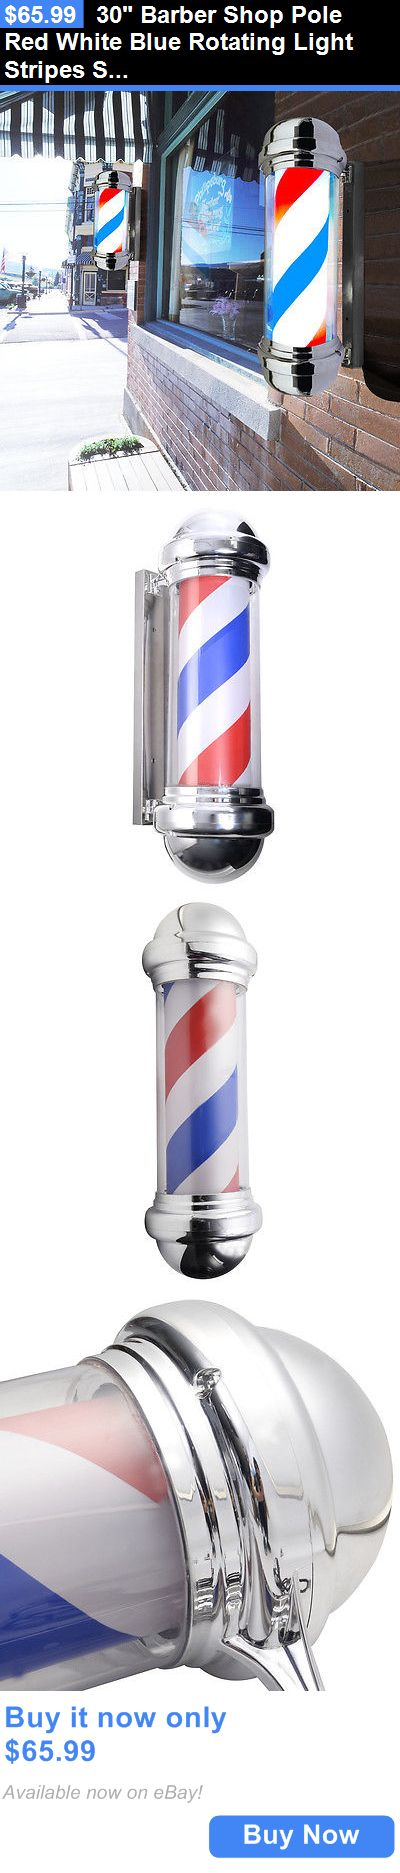 Other Salon and Spa Equipment: 30 Barber Shop Pole Red White Blue Rotating Light Stripes Sign Hair Salon New BUY IT NOW ONLY: $65.99